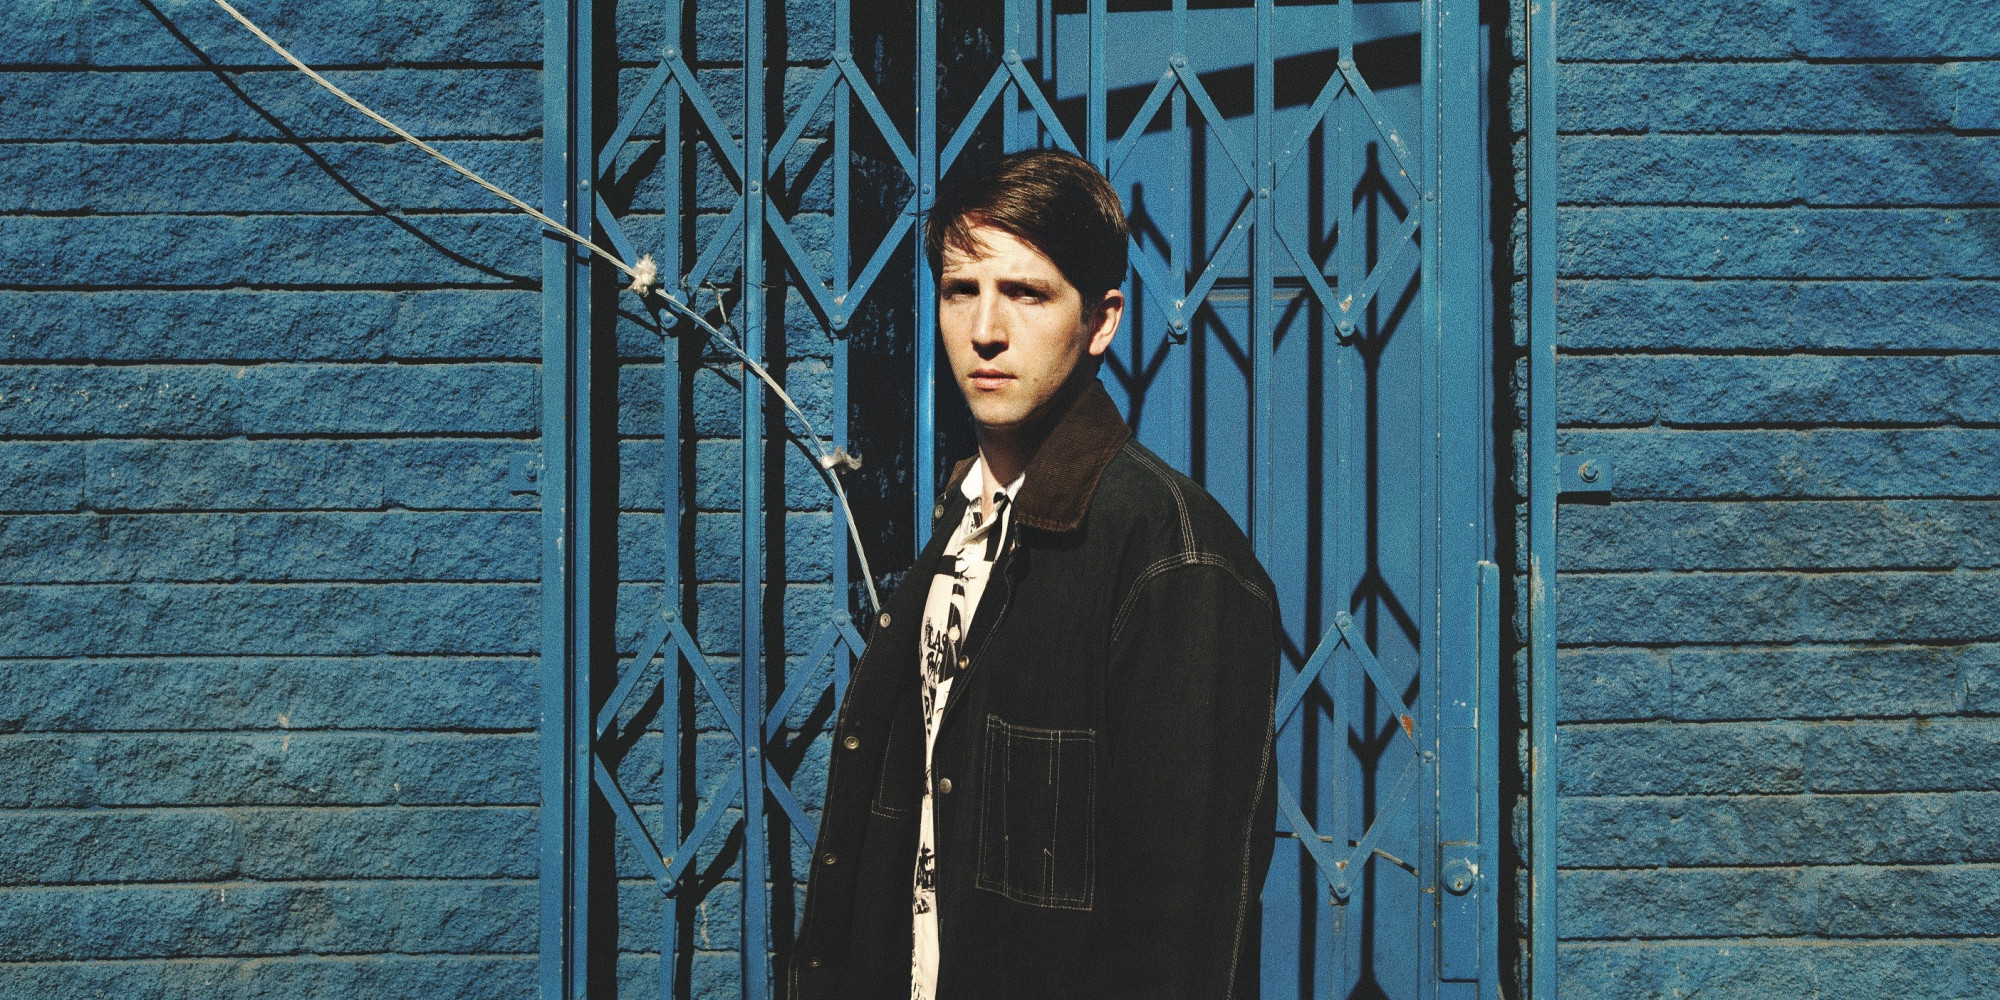 o-owen-pallett-facebook.jpg